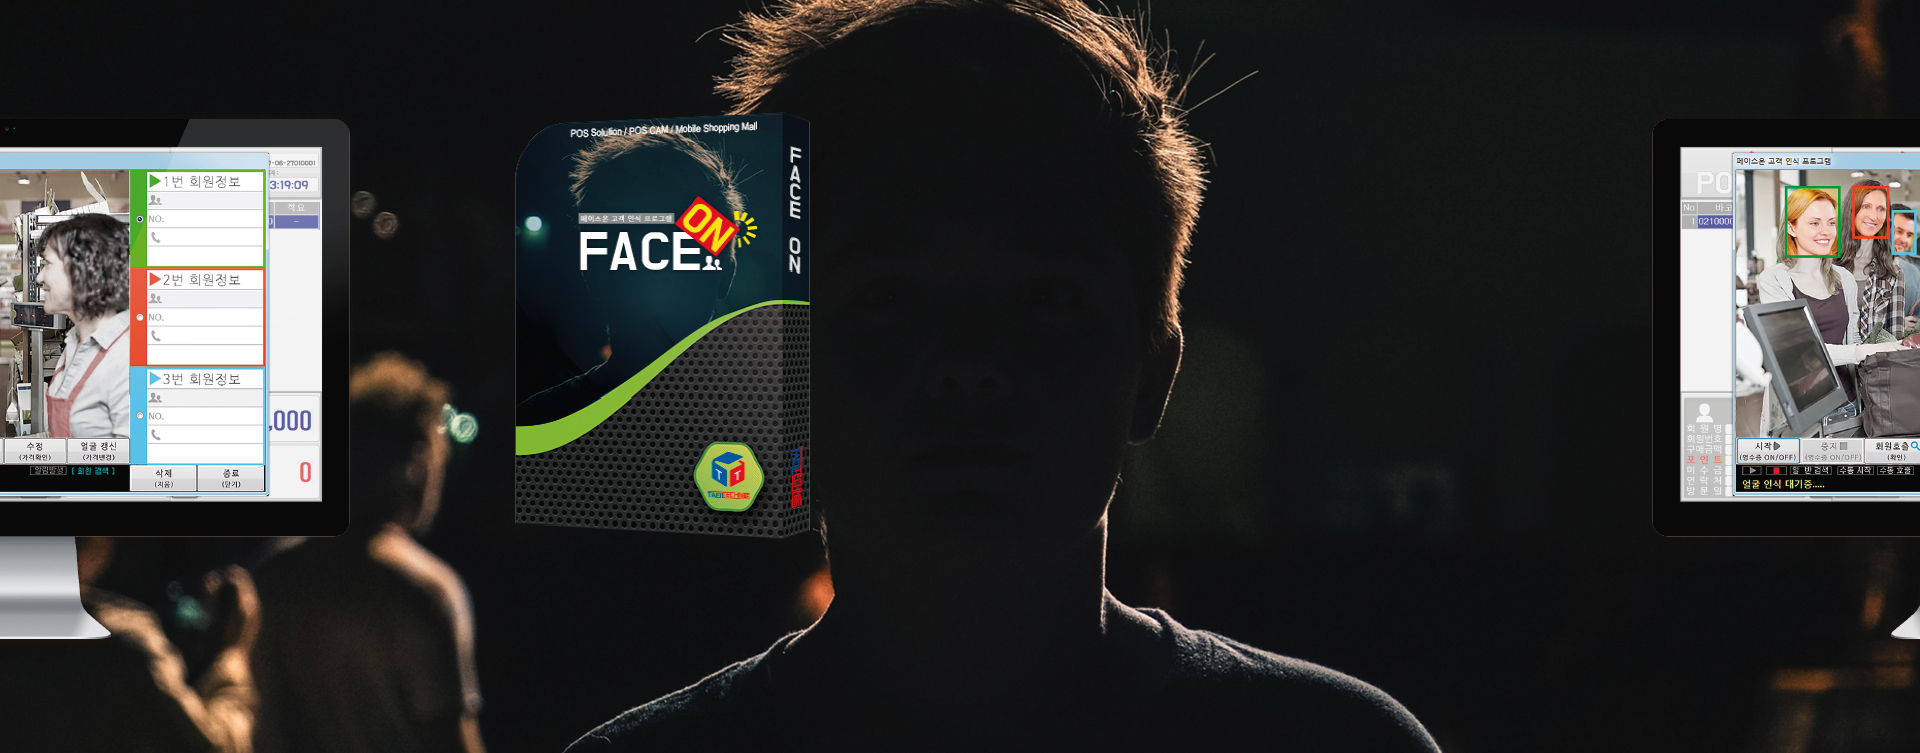 Face On